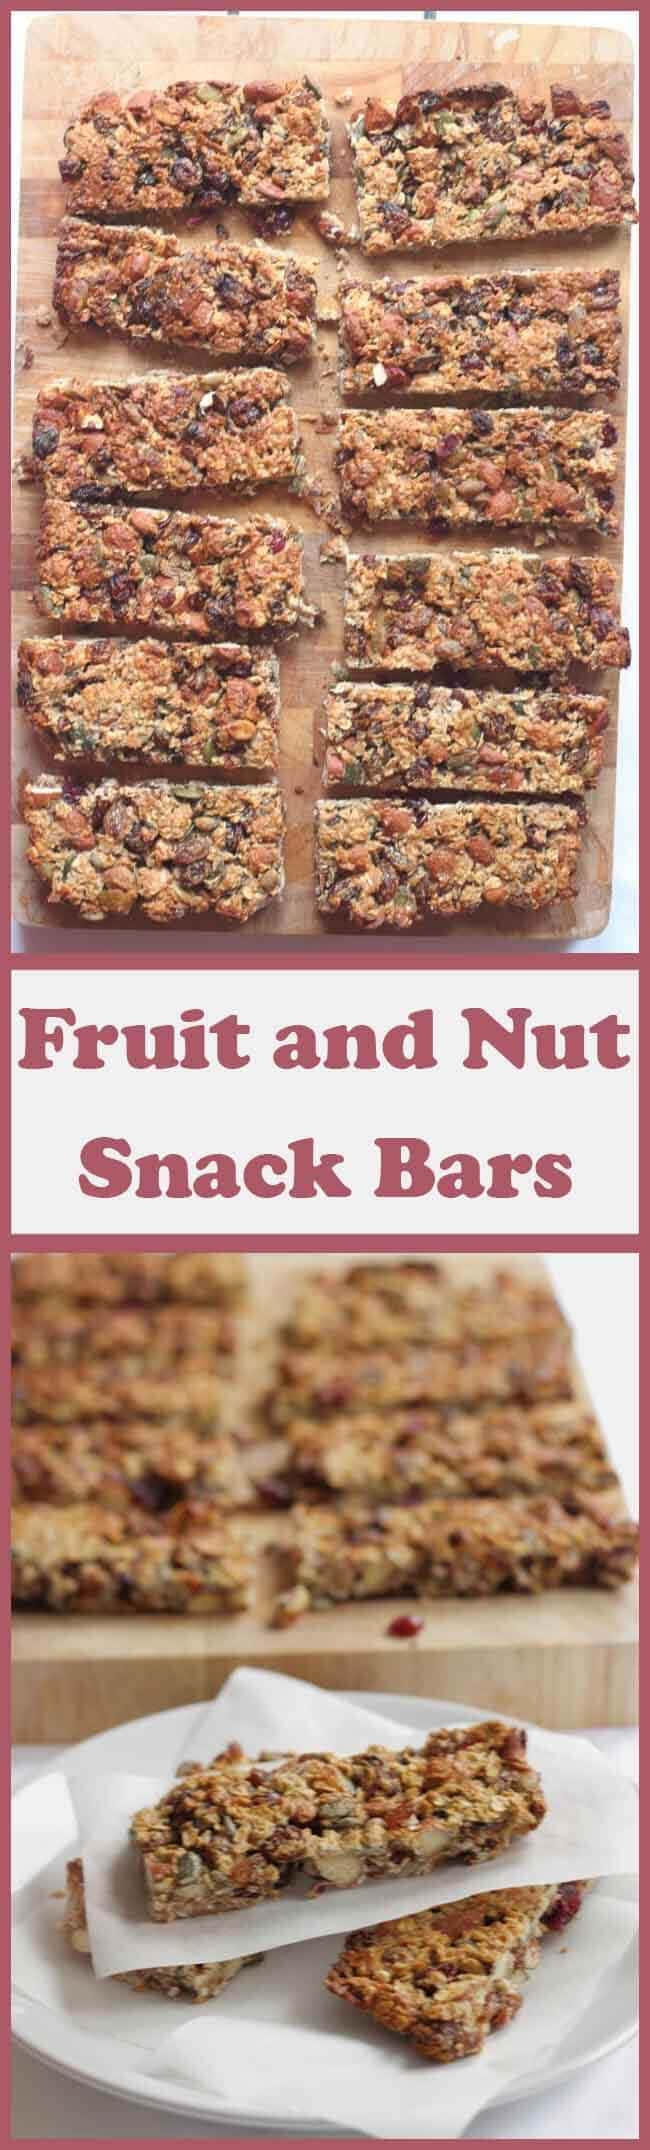 kiwi fruit facts healthy fruit and nut granola bar recipe